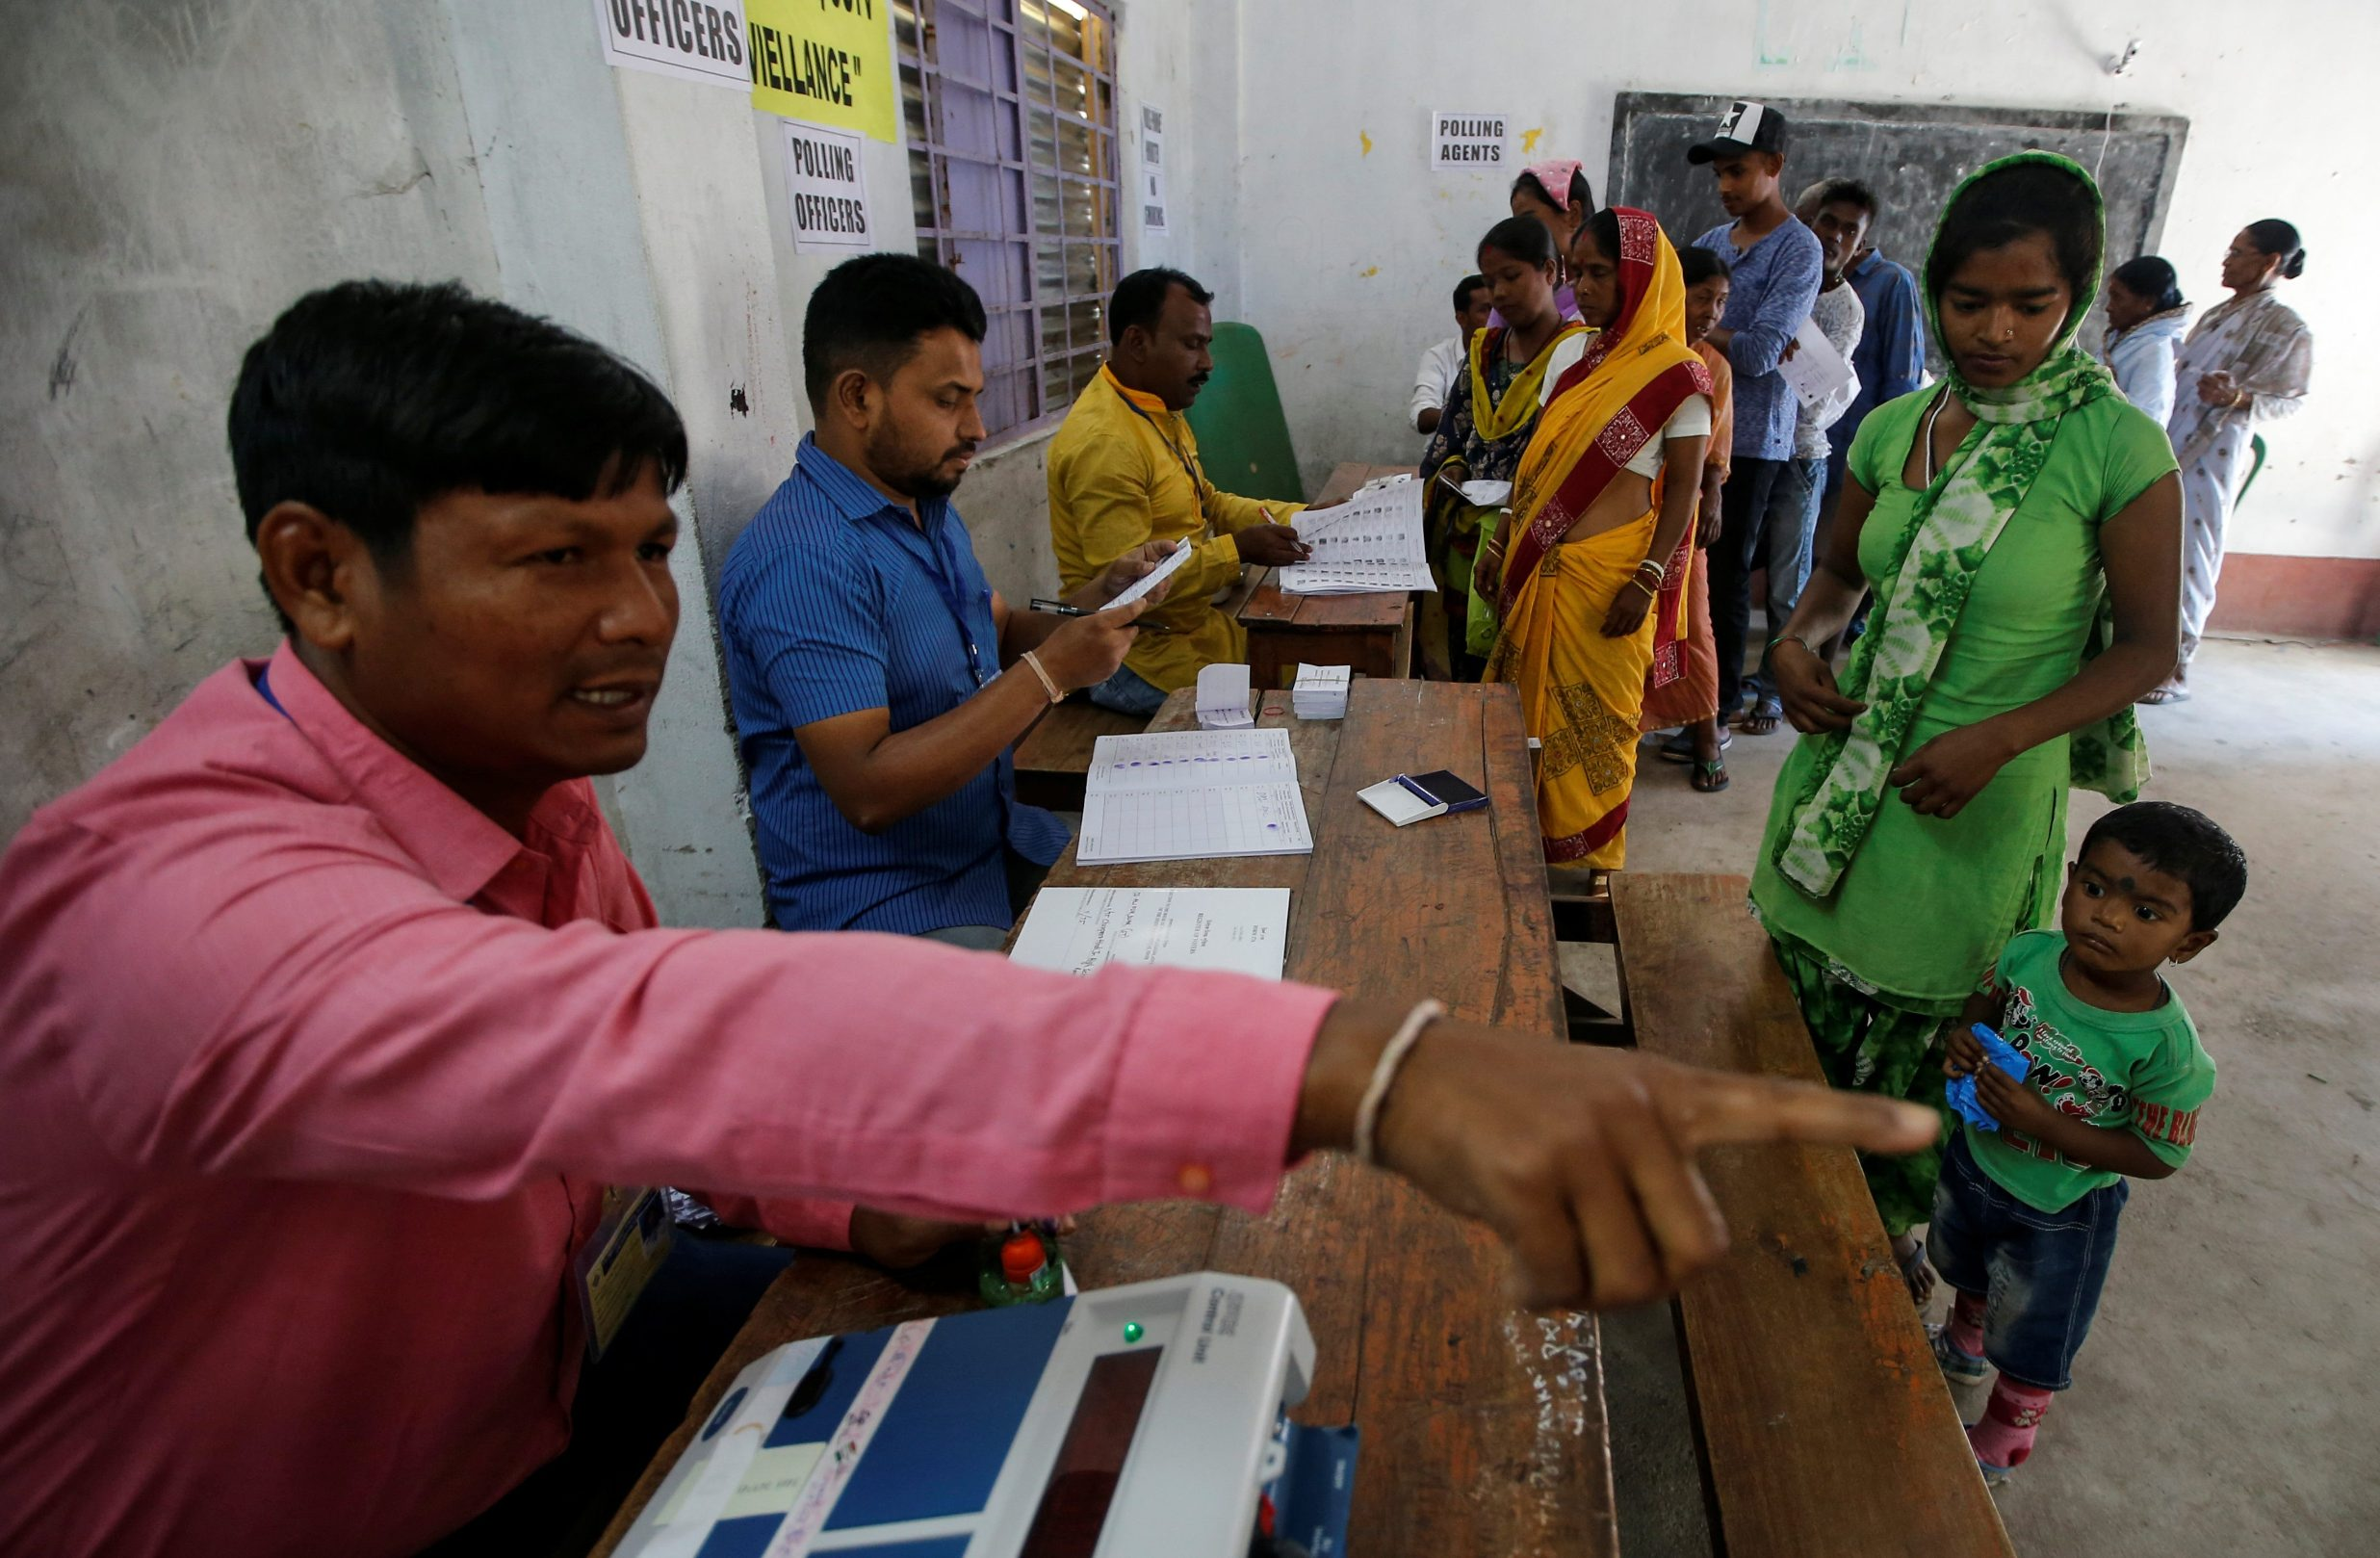 An election official guides a woman as she arrives to vote at a polling station during the first phase of general election in Alipurduar district, in the eastern state of West Bengal, India, April 11, 2019. REUTERS/Rupak De Chowdhuri